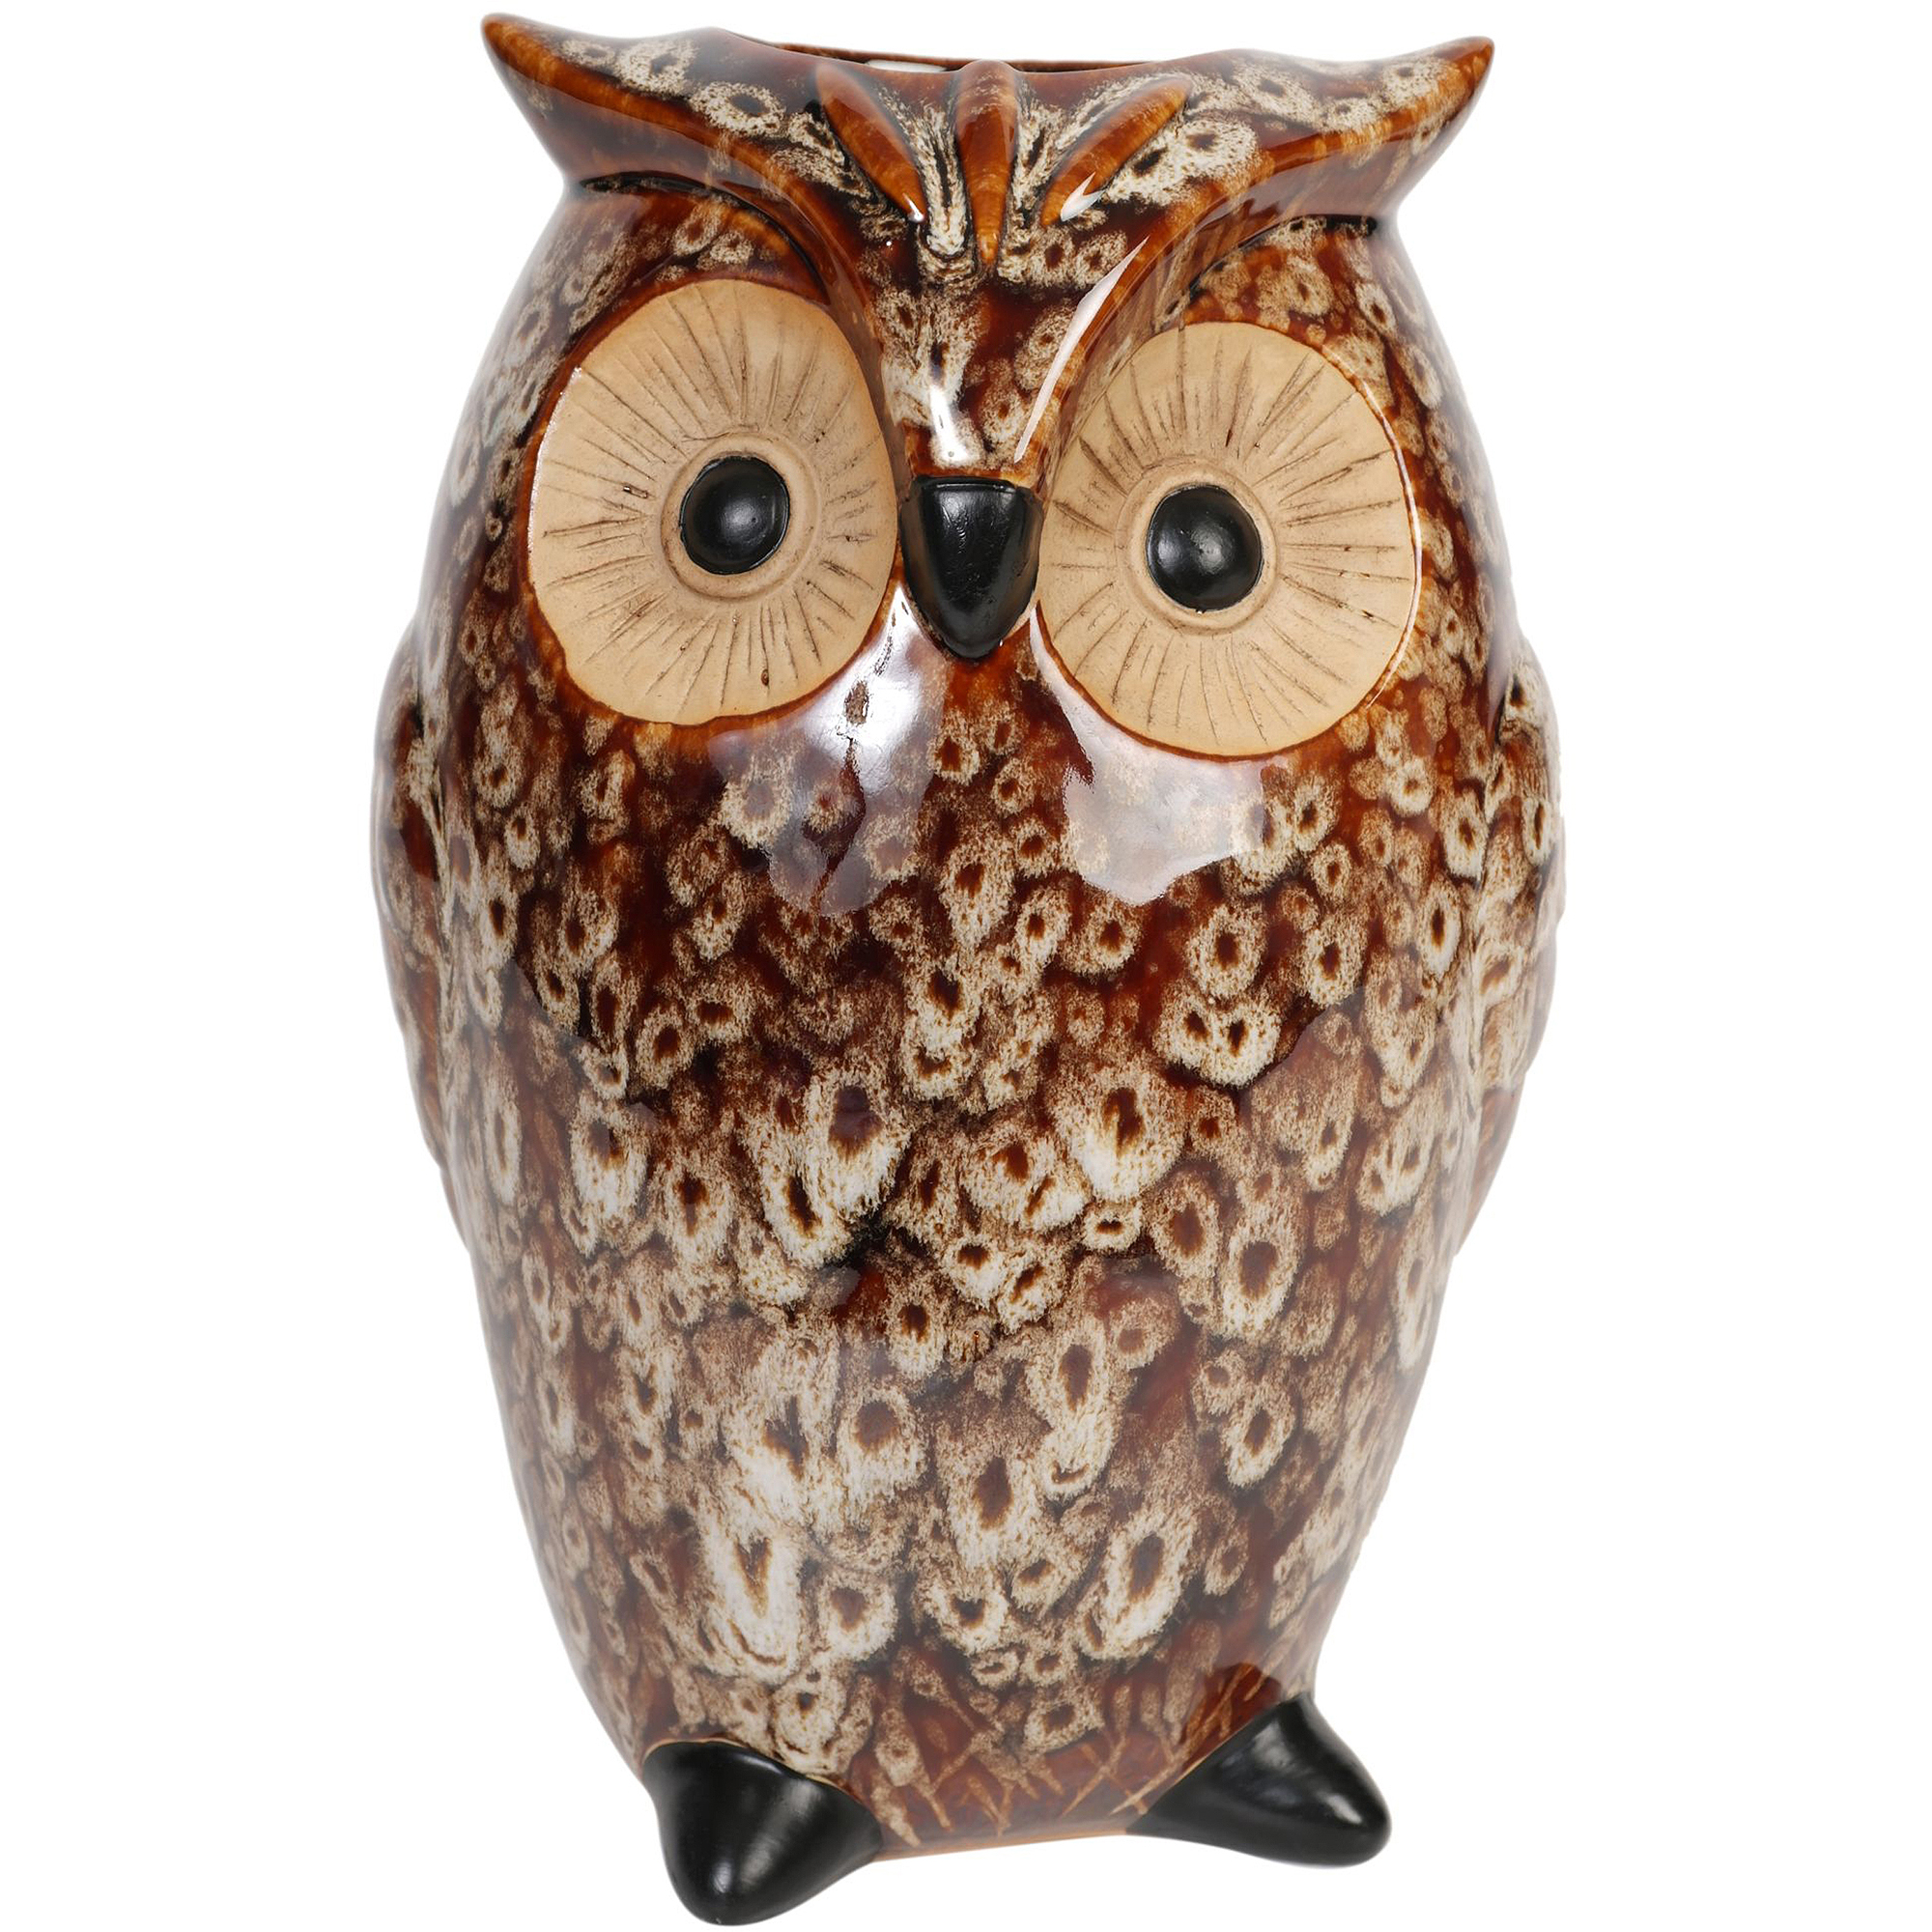 Hosley Ceramic Owl Vase, Brown